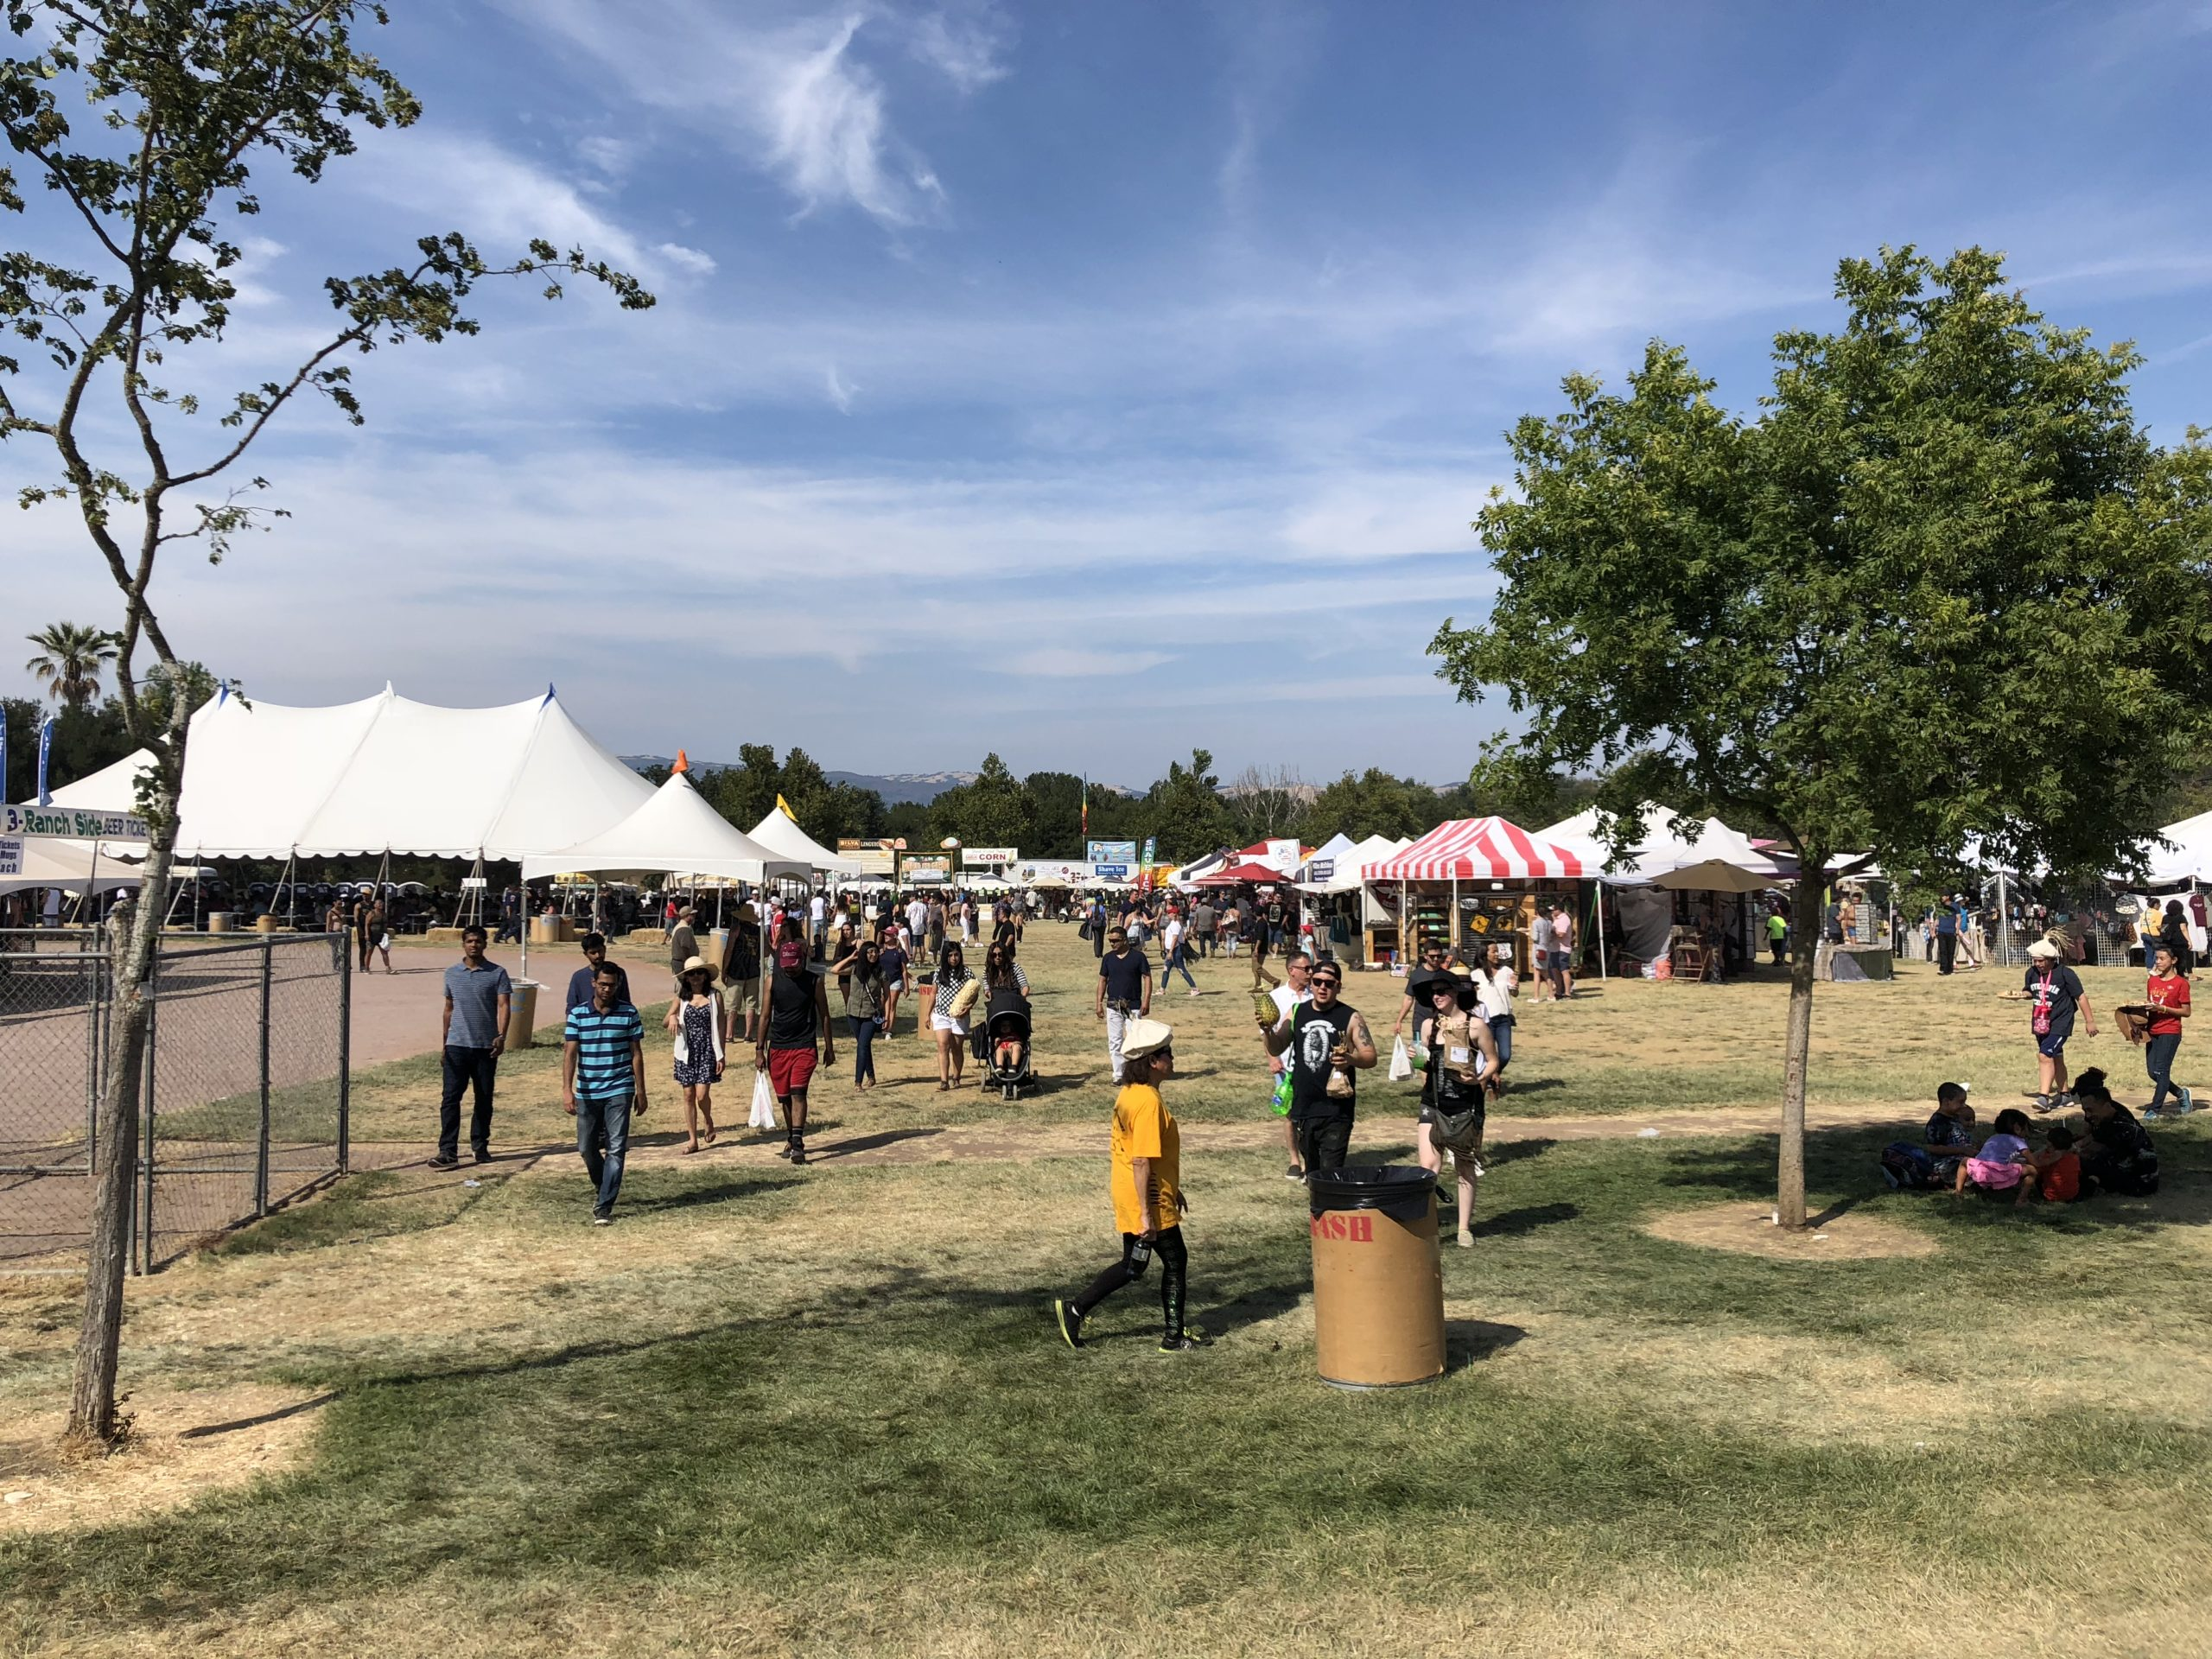 Small crowds walk around fairgrounds of the Garlic Festival before the mass shooting